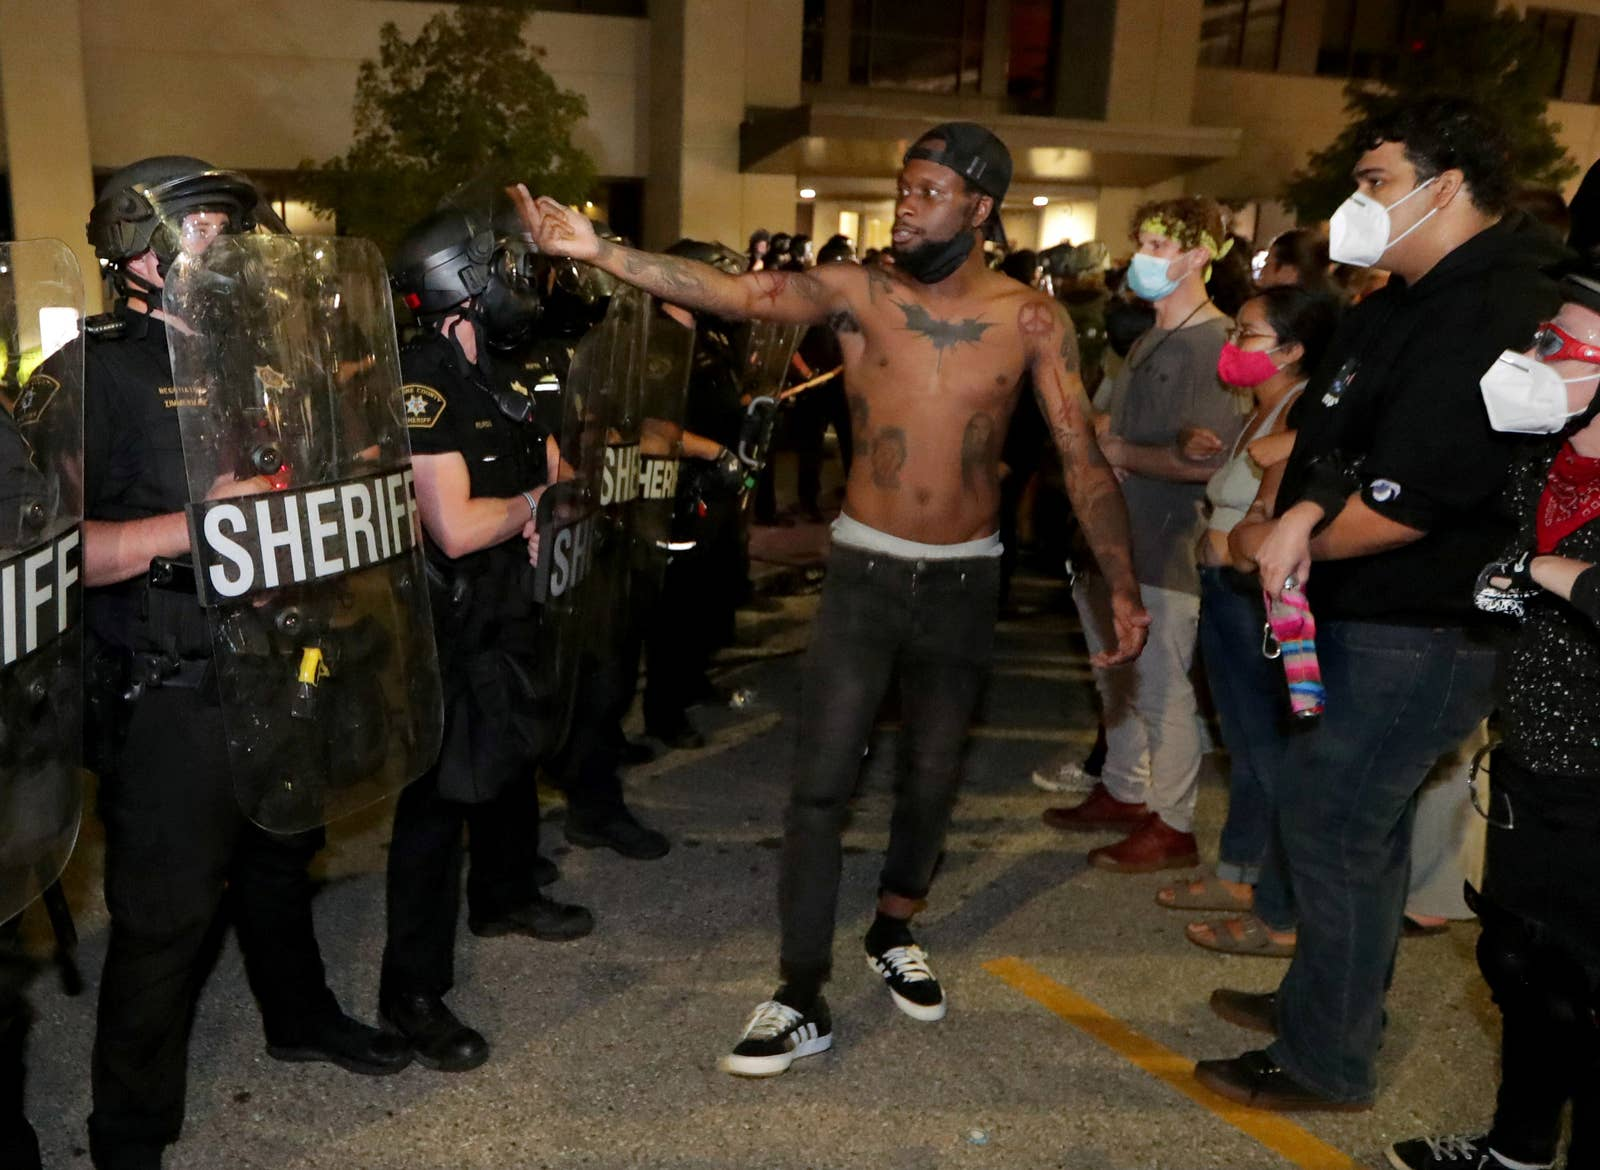 A shirtless Black man uses gestures with his pointer and middle finger raised to a line of police with a crowd next to him